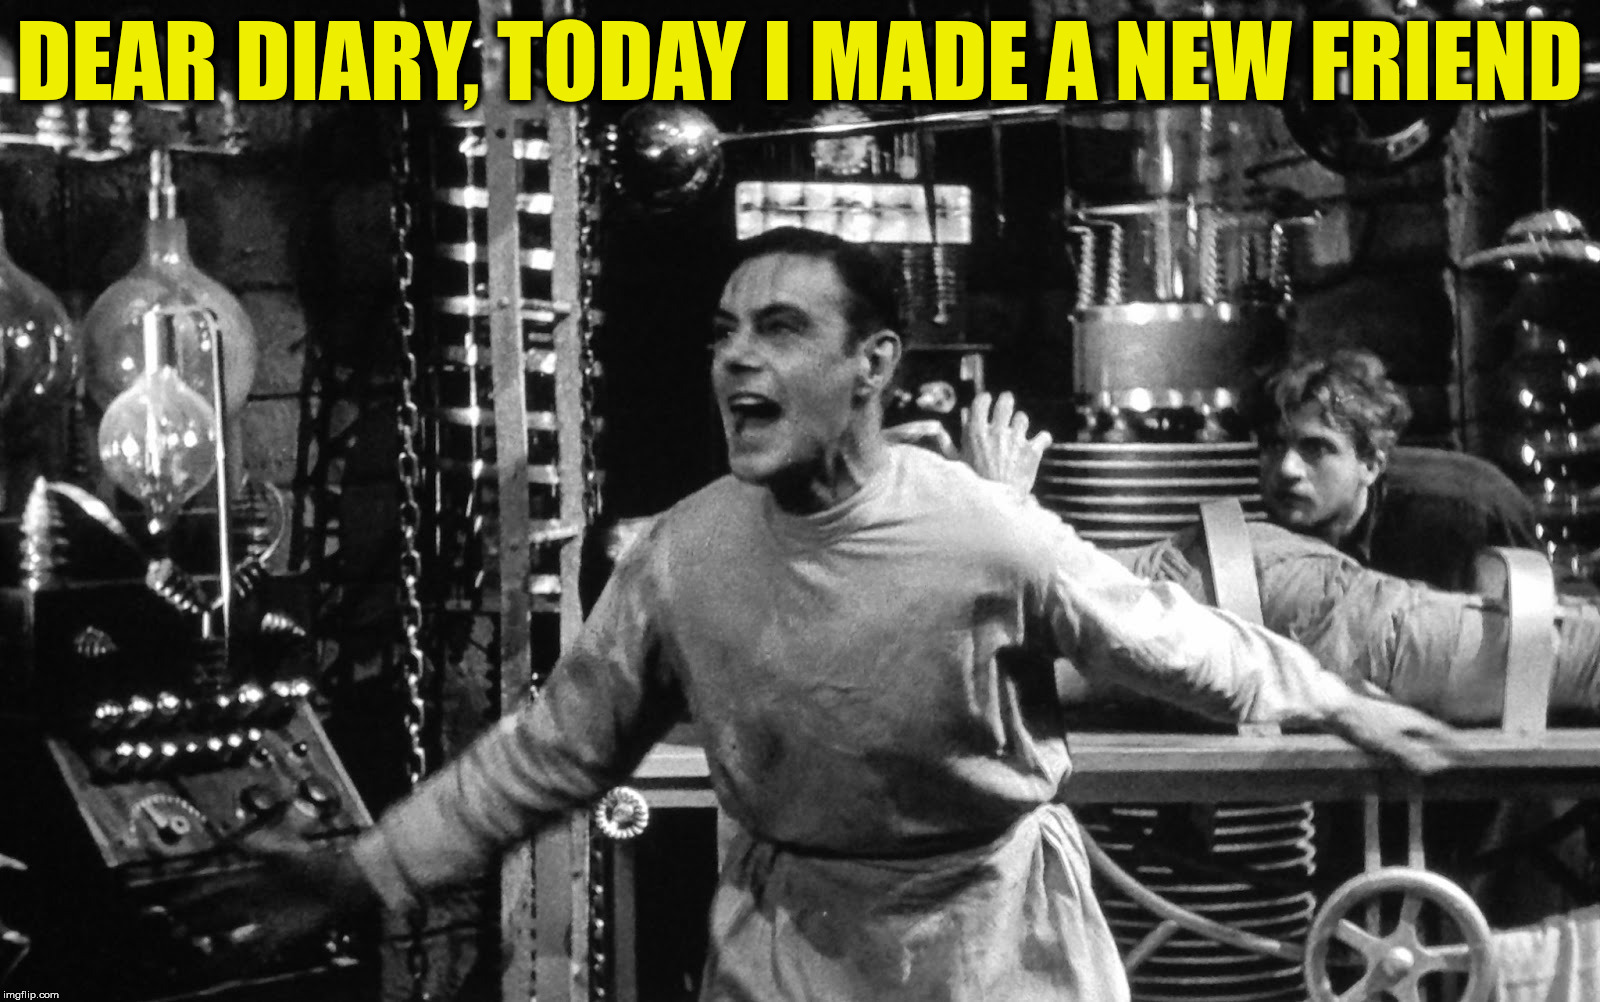 Sometimes it gets boring in the lab... | DEAR DIARY, TODAY I MADE A NEW FRIEND | image tagged in dr frankenstein,diary entry,friendship is magic | made w/ Imgflip meme maker